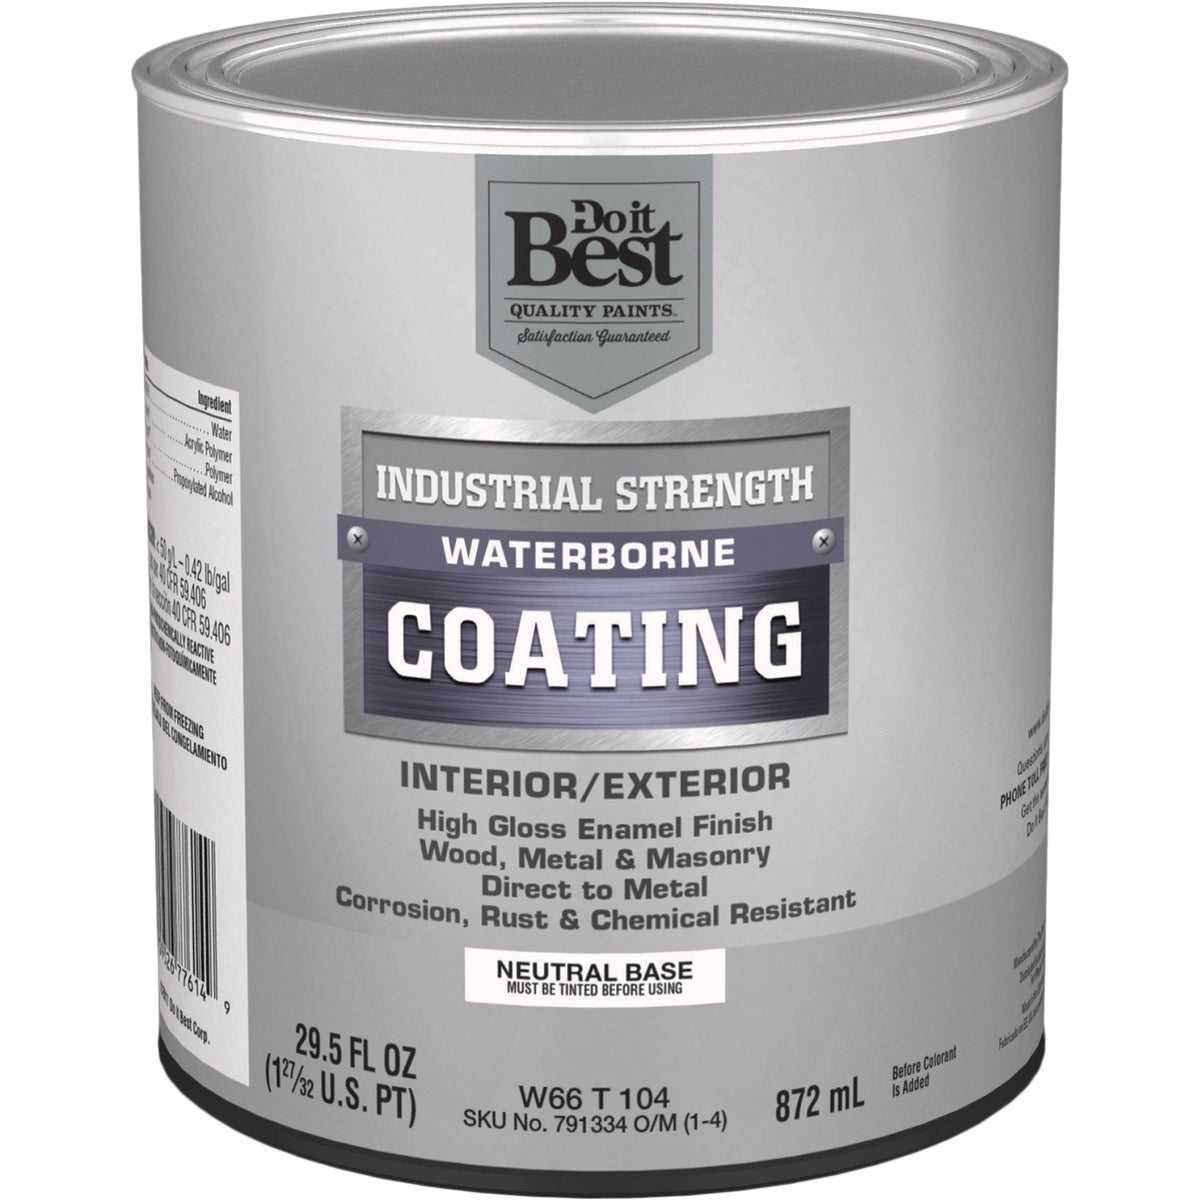 GLS NEUTRAL BS LTX PAINT - W66T00104-44 by Do it Best